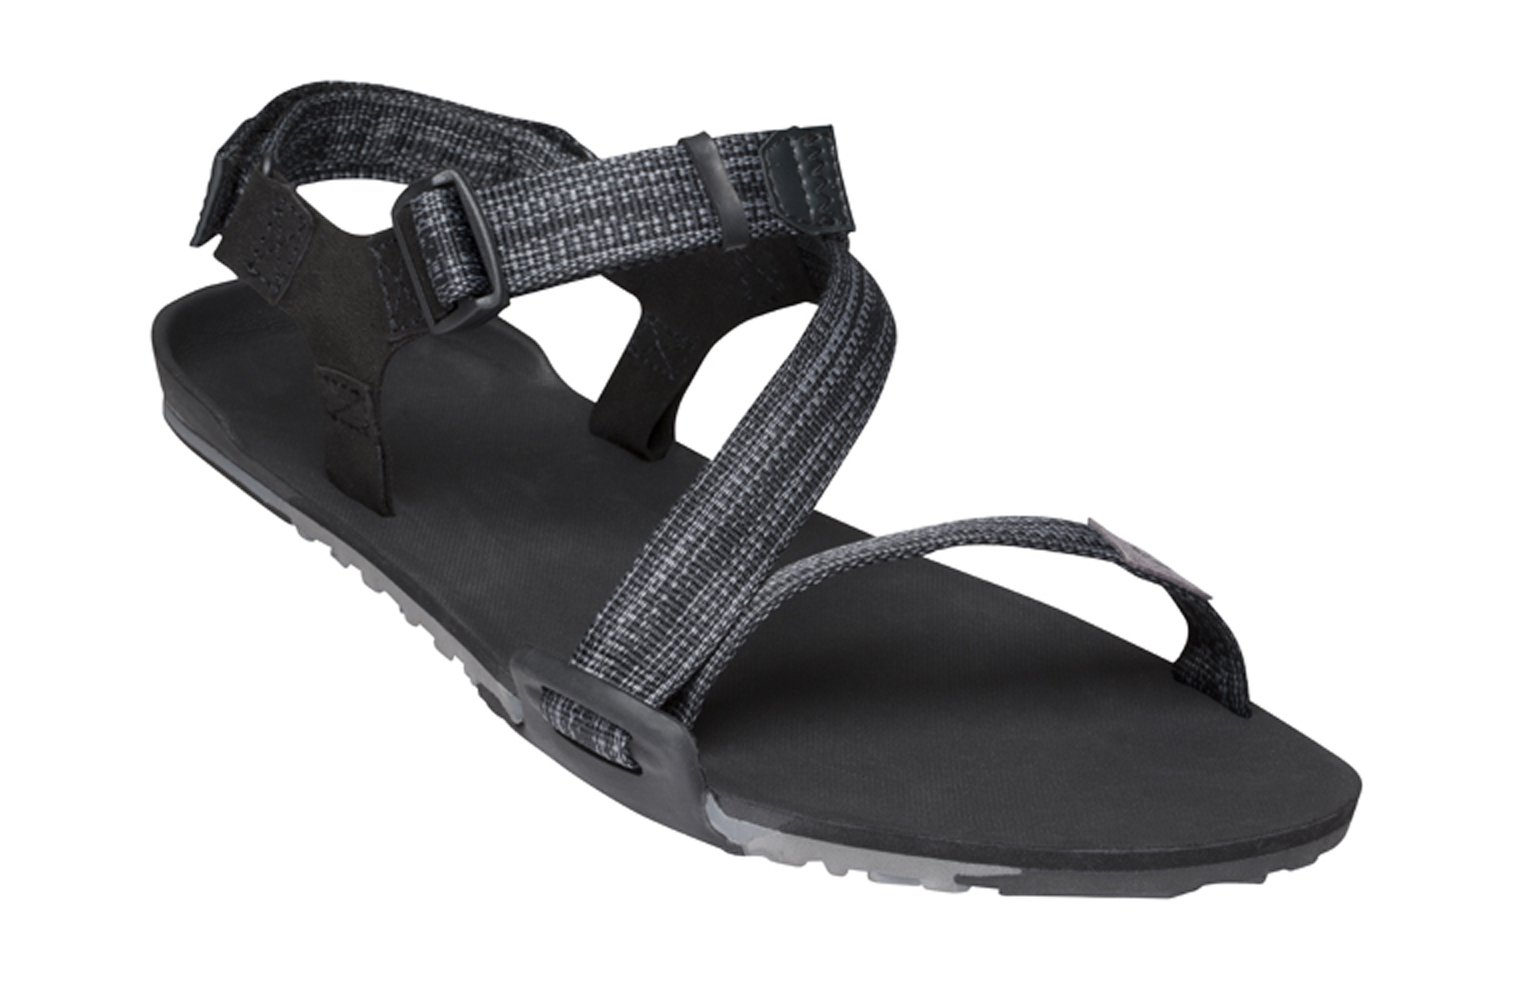 Xero Shoes Z-Trail - Men's Lightweight Hiking and Running Sandal - Barefoot-Inspired Minimalist Trail Sport Sandals - Multi-Black by Xero Shoes